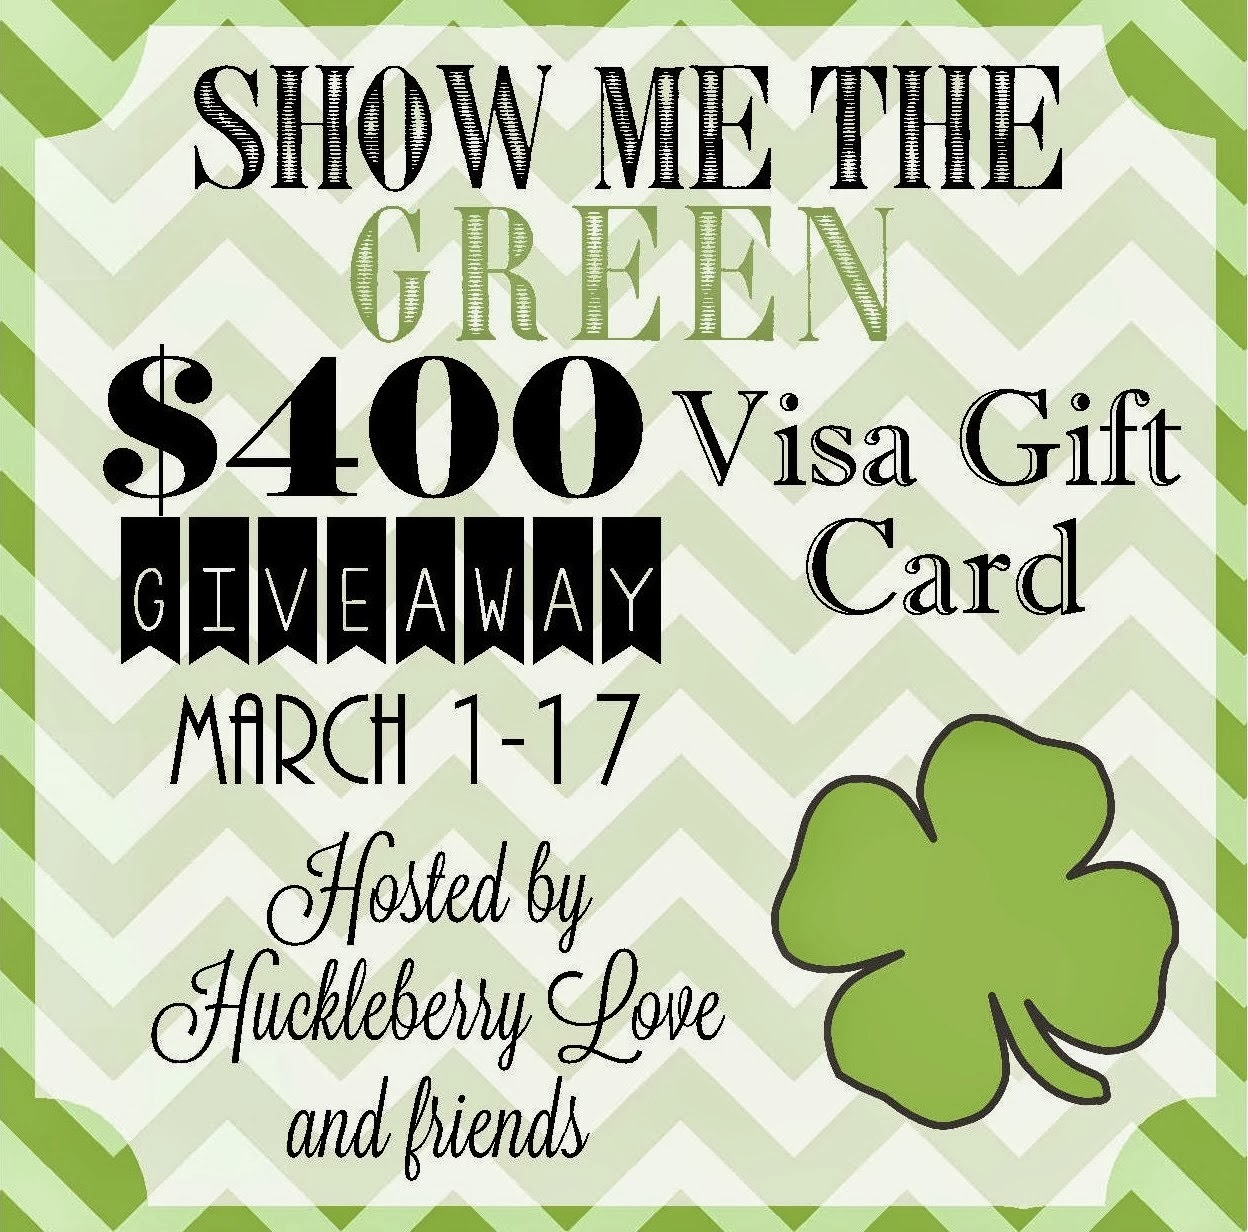 Shoe Me the Green Cash Giveaway